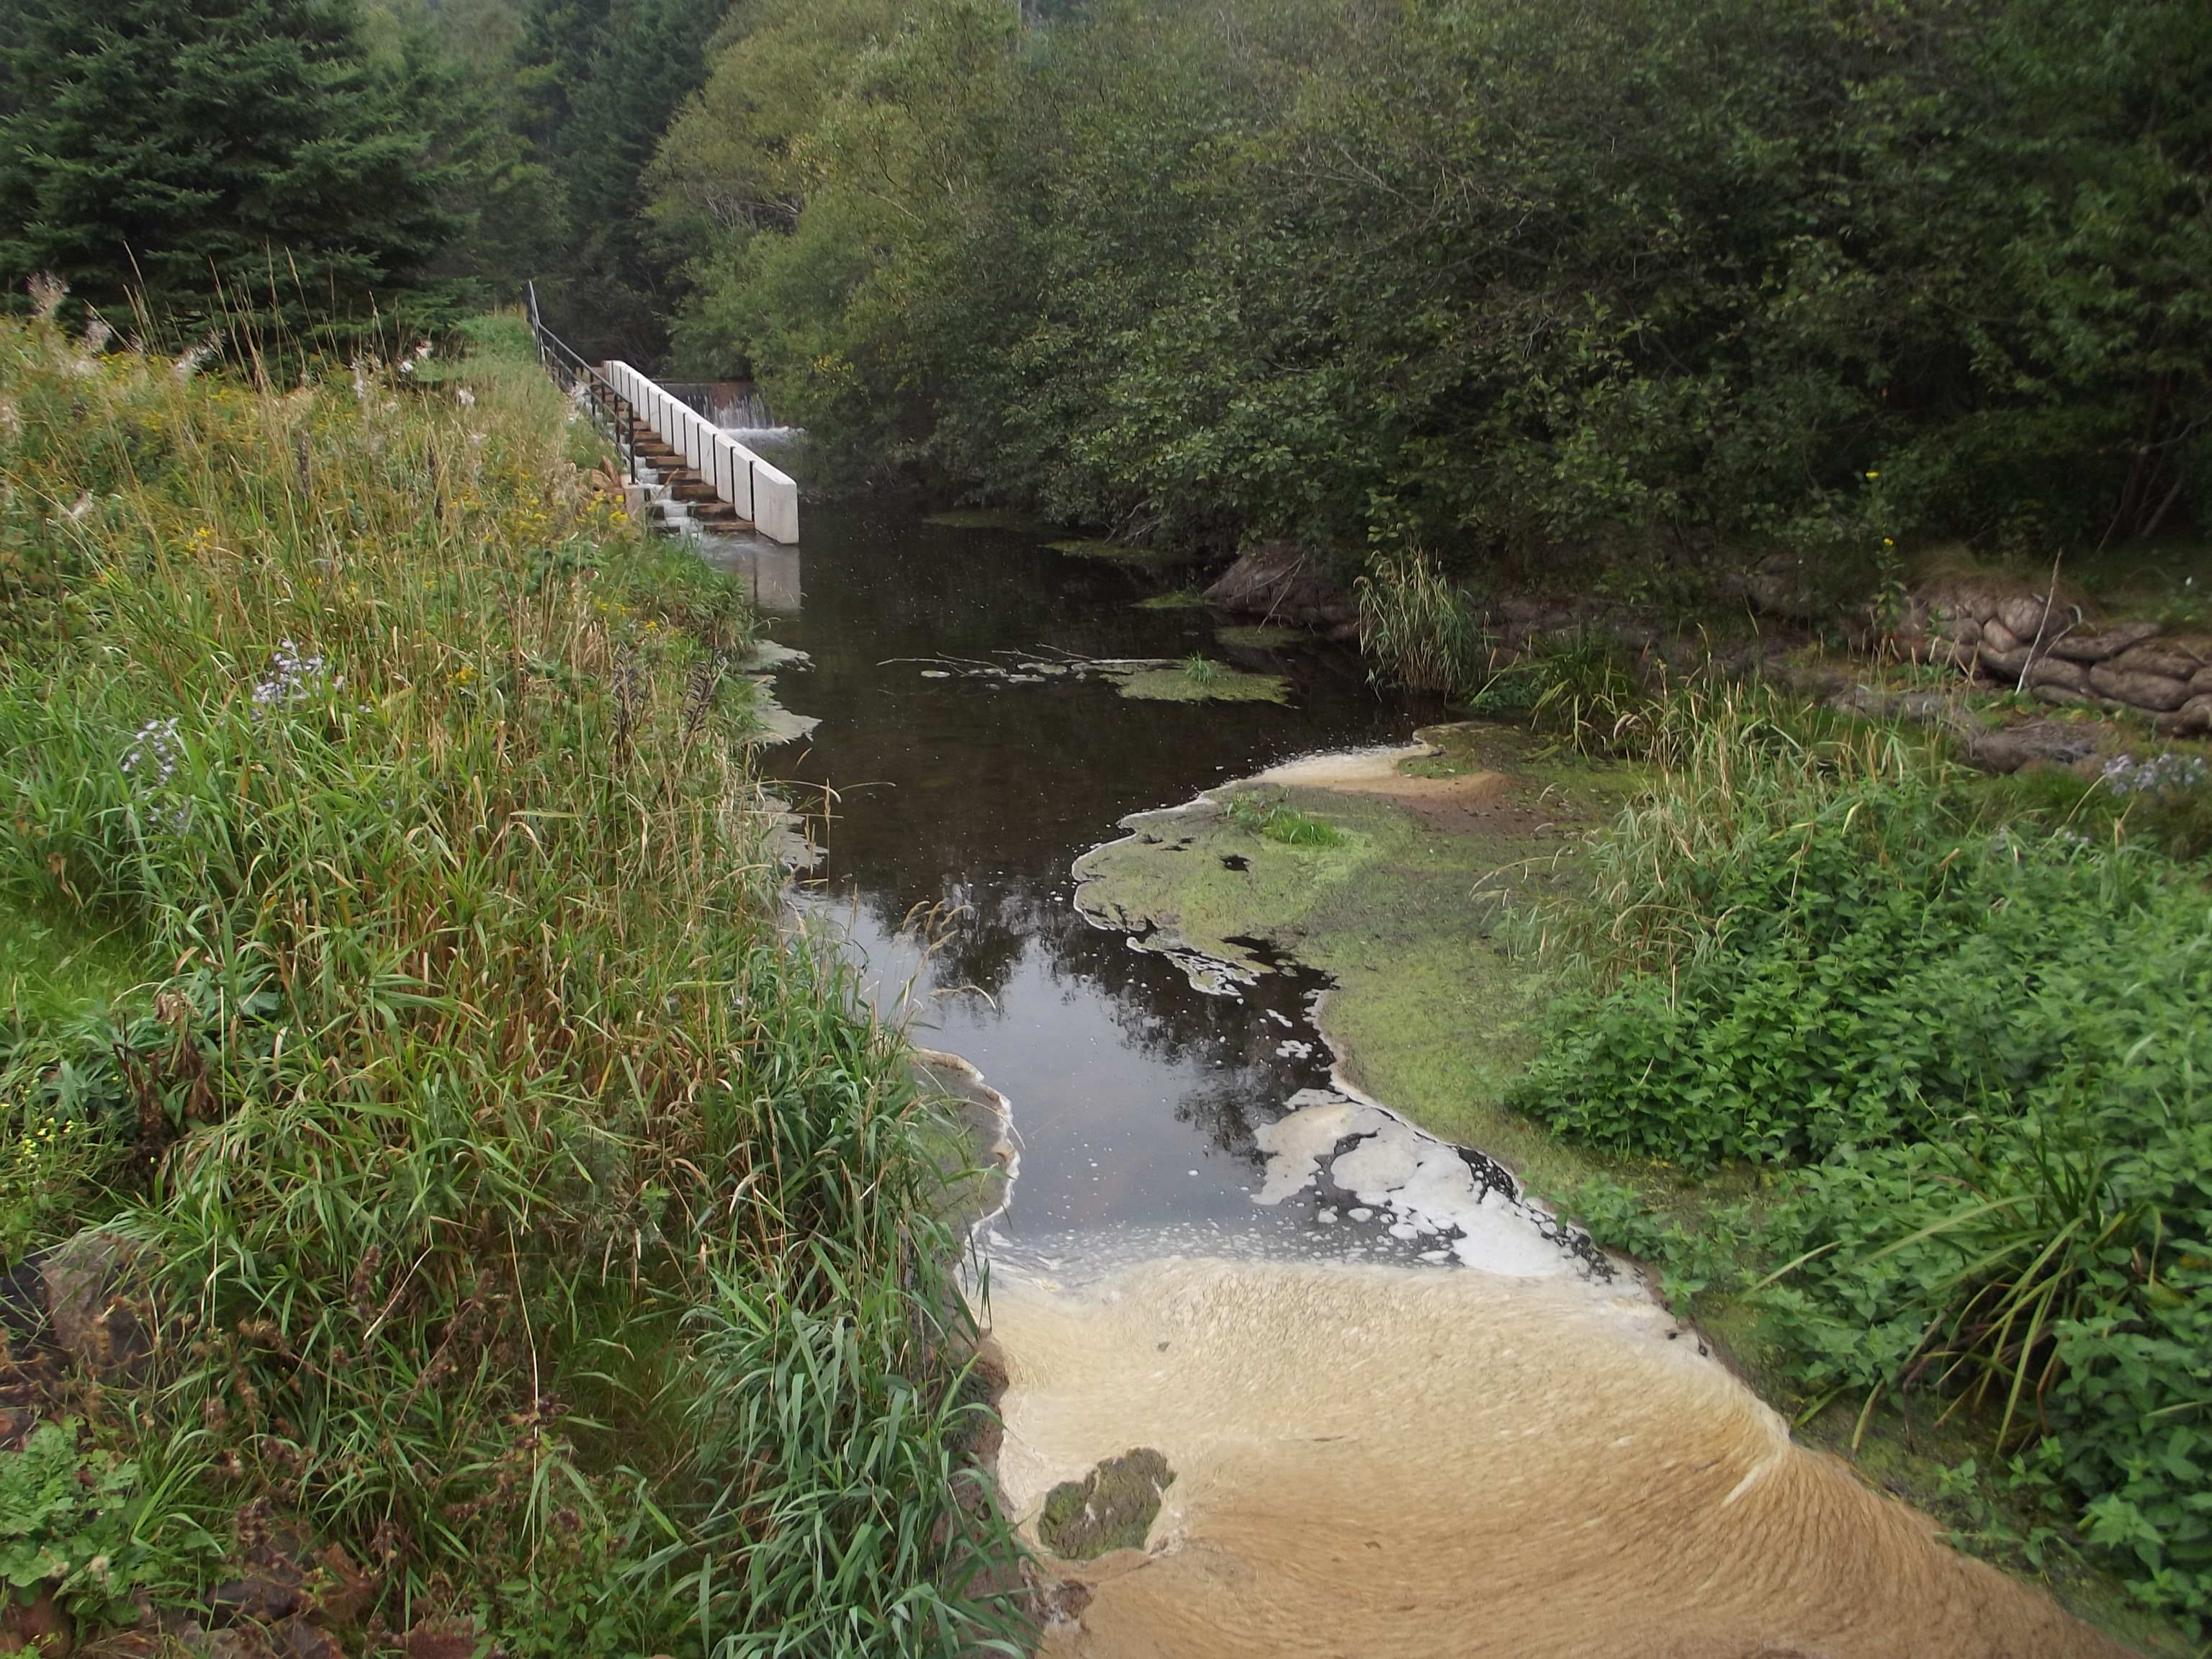 Foam in slow moving area below a culvert